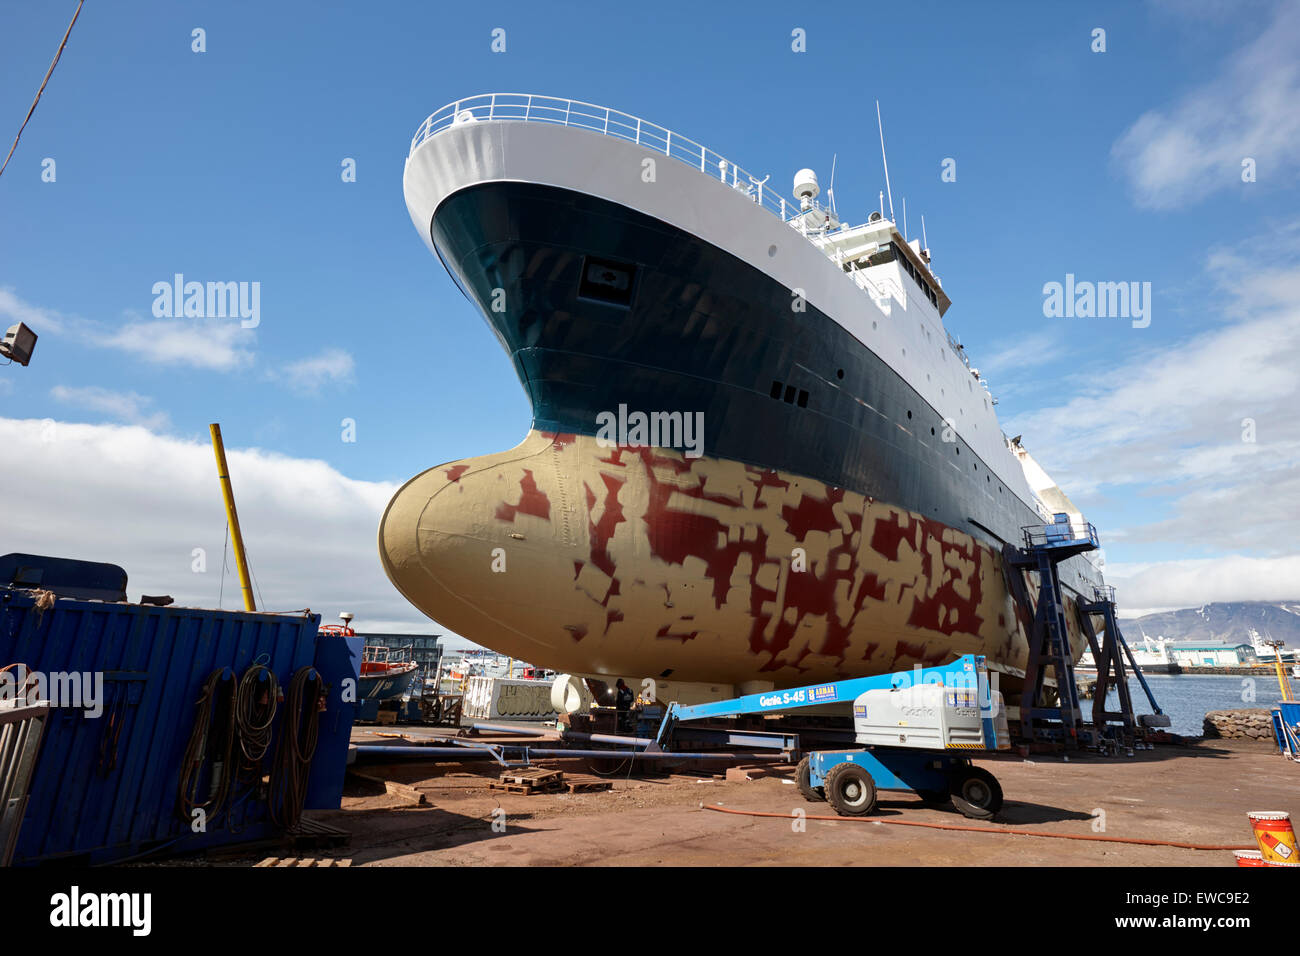 ship repairs in dry dock Reykjavik harbour iceland Stock Photo